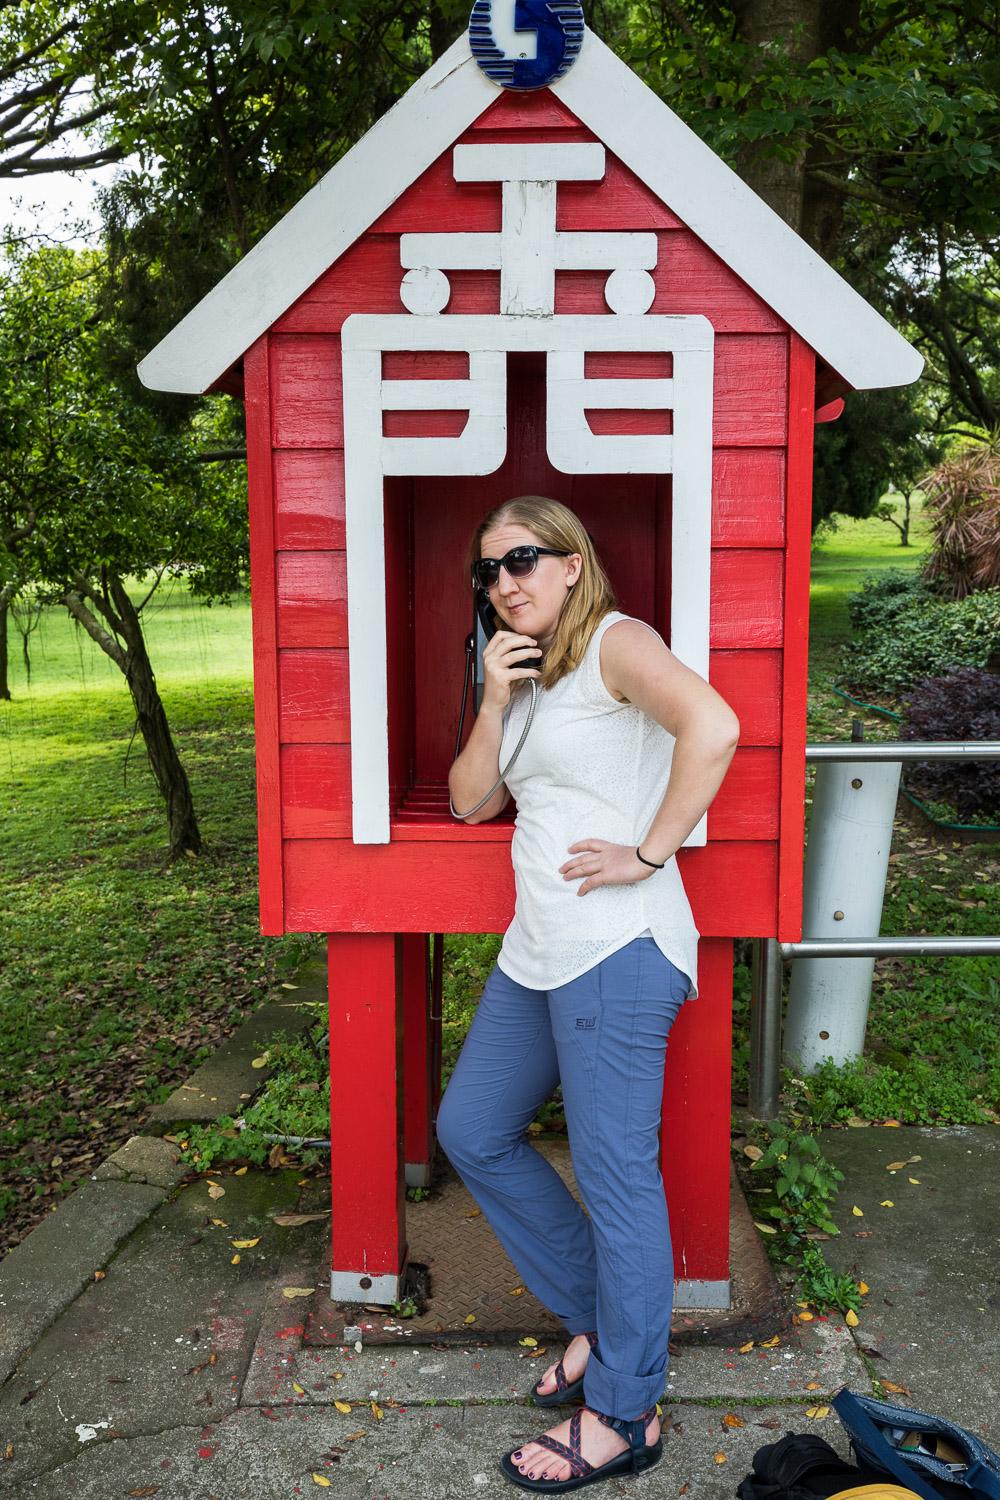 Kinmen: Picture of Jinmen phone booth.